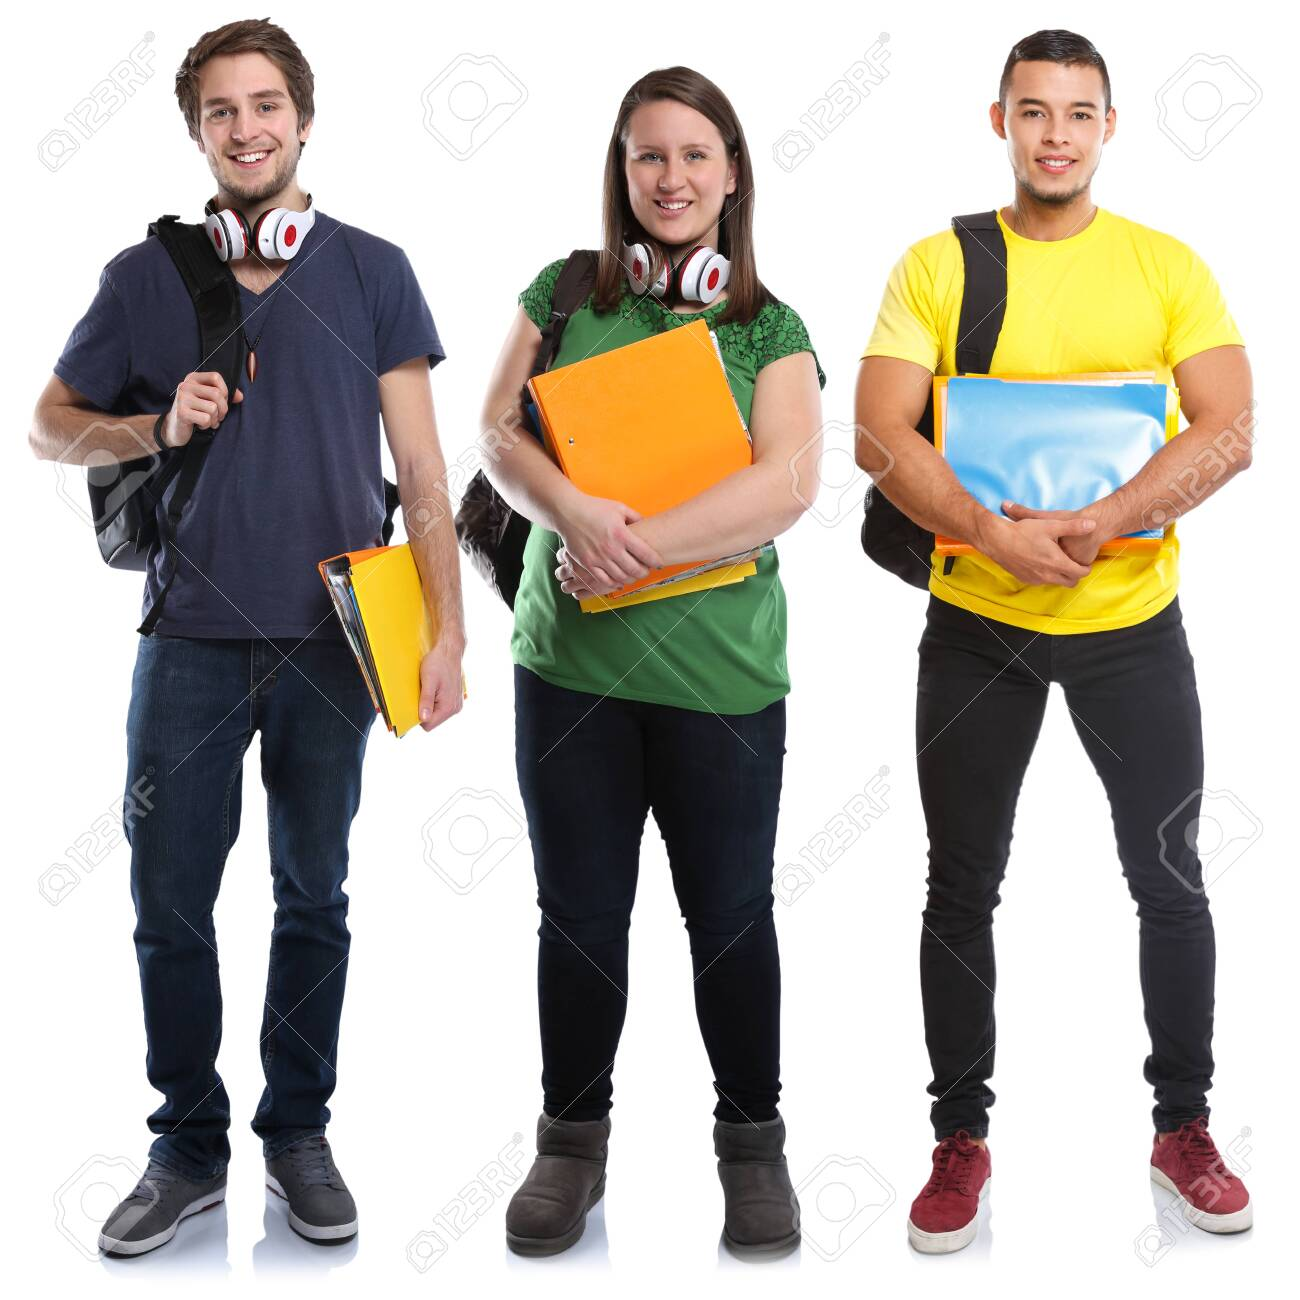 Students study education young people isolated on a white background - 123664778